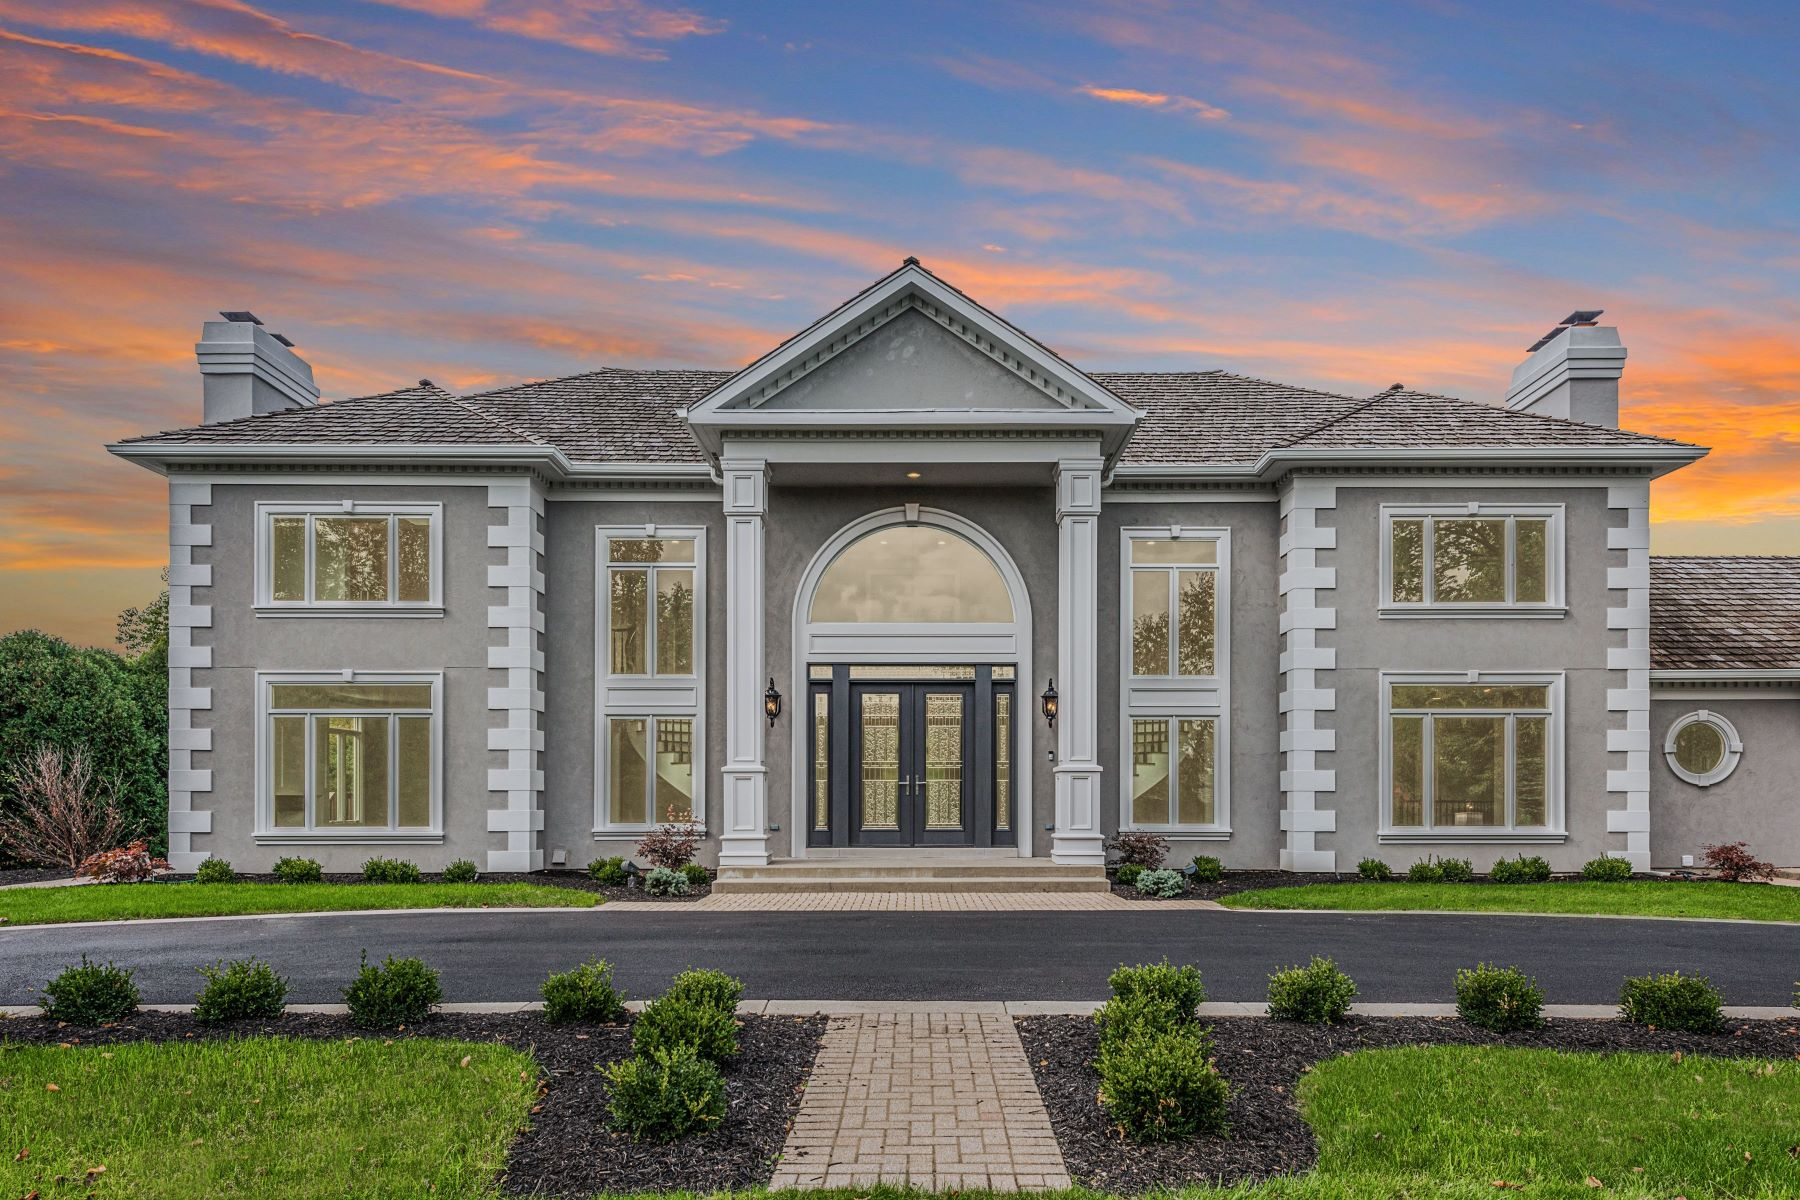 Single Family Homes for Active at Sterling Design masterpiece 56 Hillburn Lane North Barrington, Illinois 60010 United States